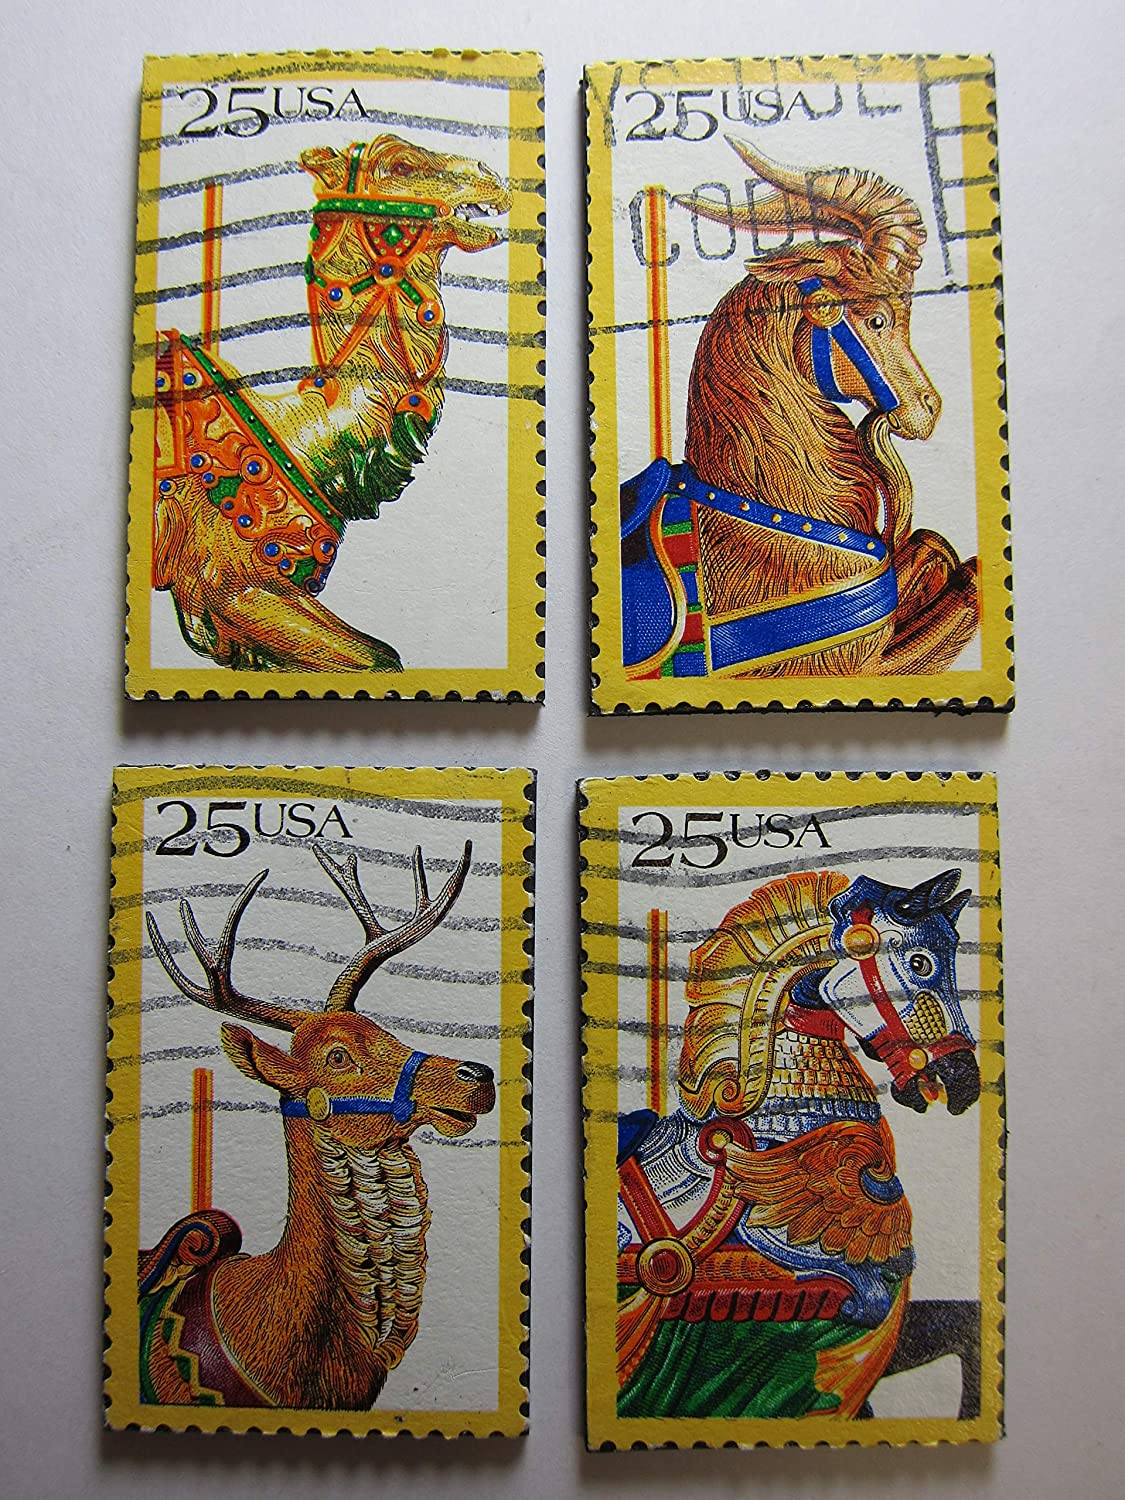 Carousel Magnets - Recycled Postage Max 72% OFF Stamp shopping Art the from USA